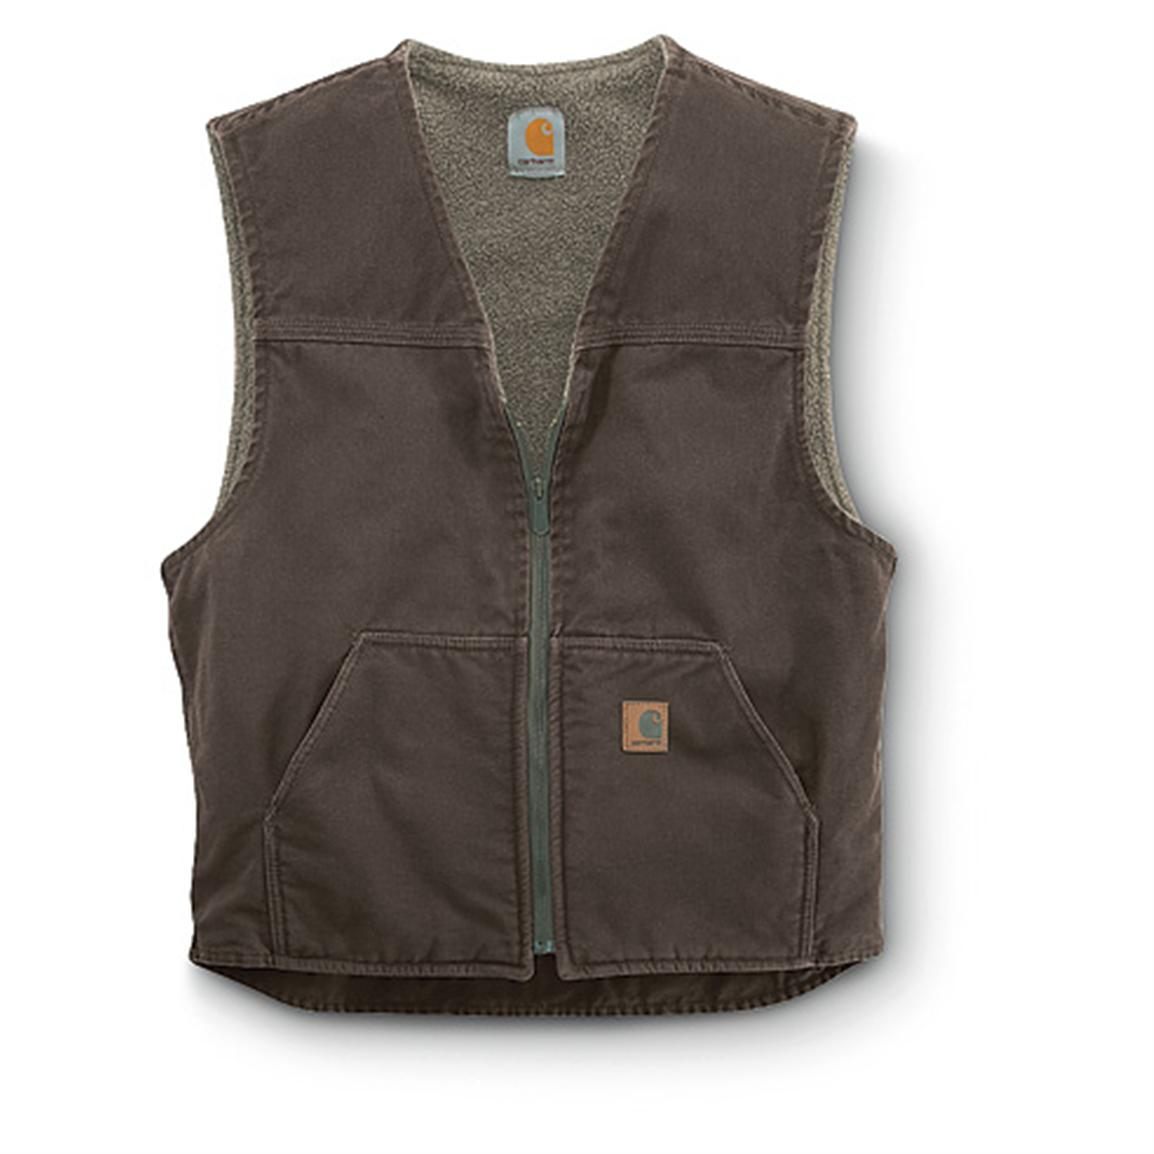 Carhartt Men's Sandstone Rugged Sherpa-Lined Vest, Dark Brown